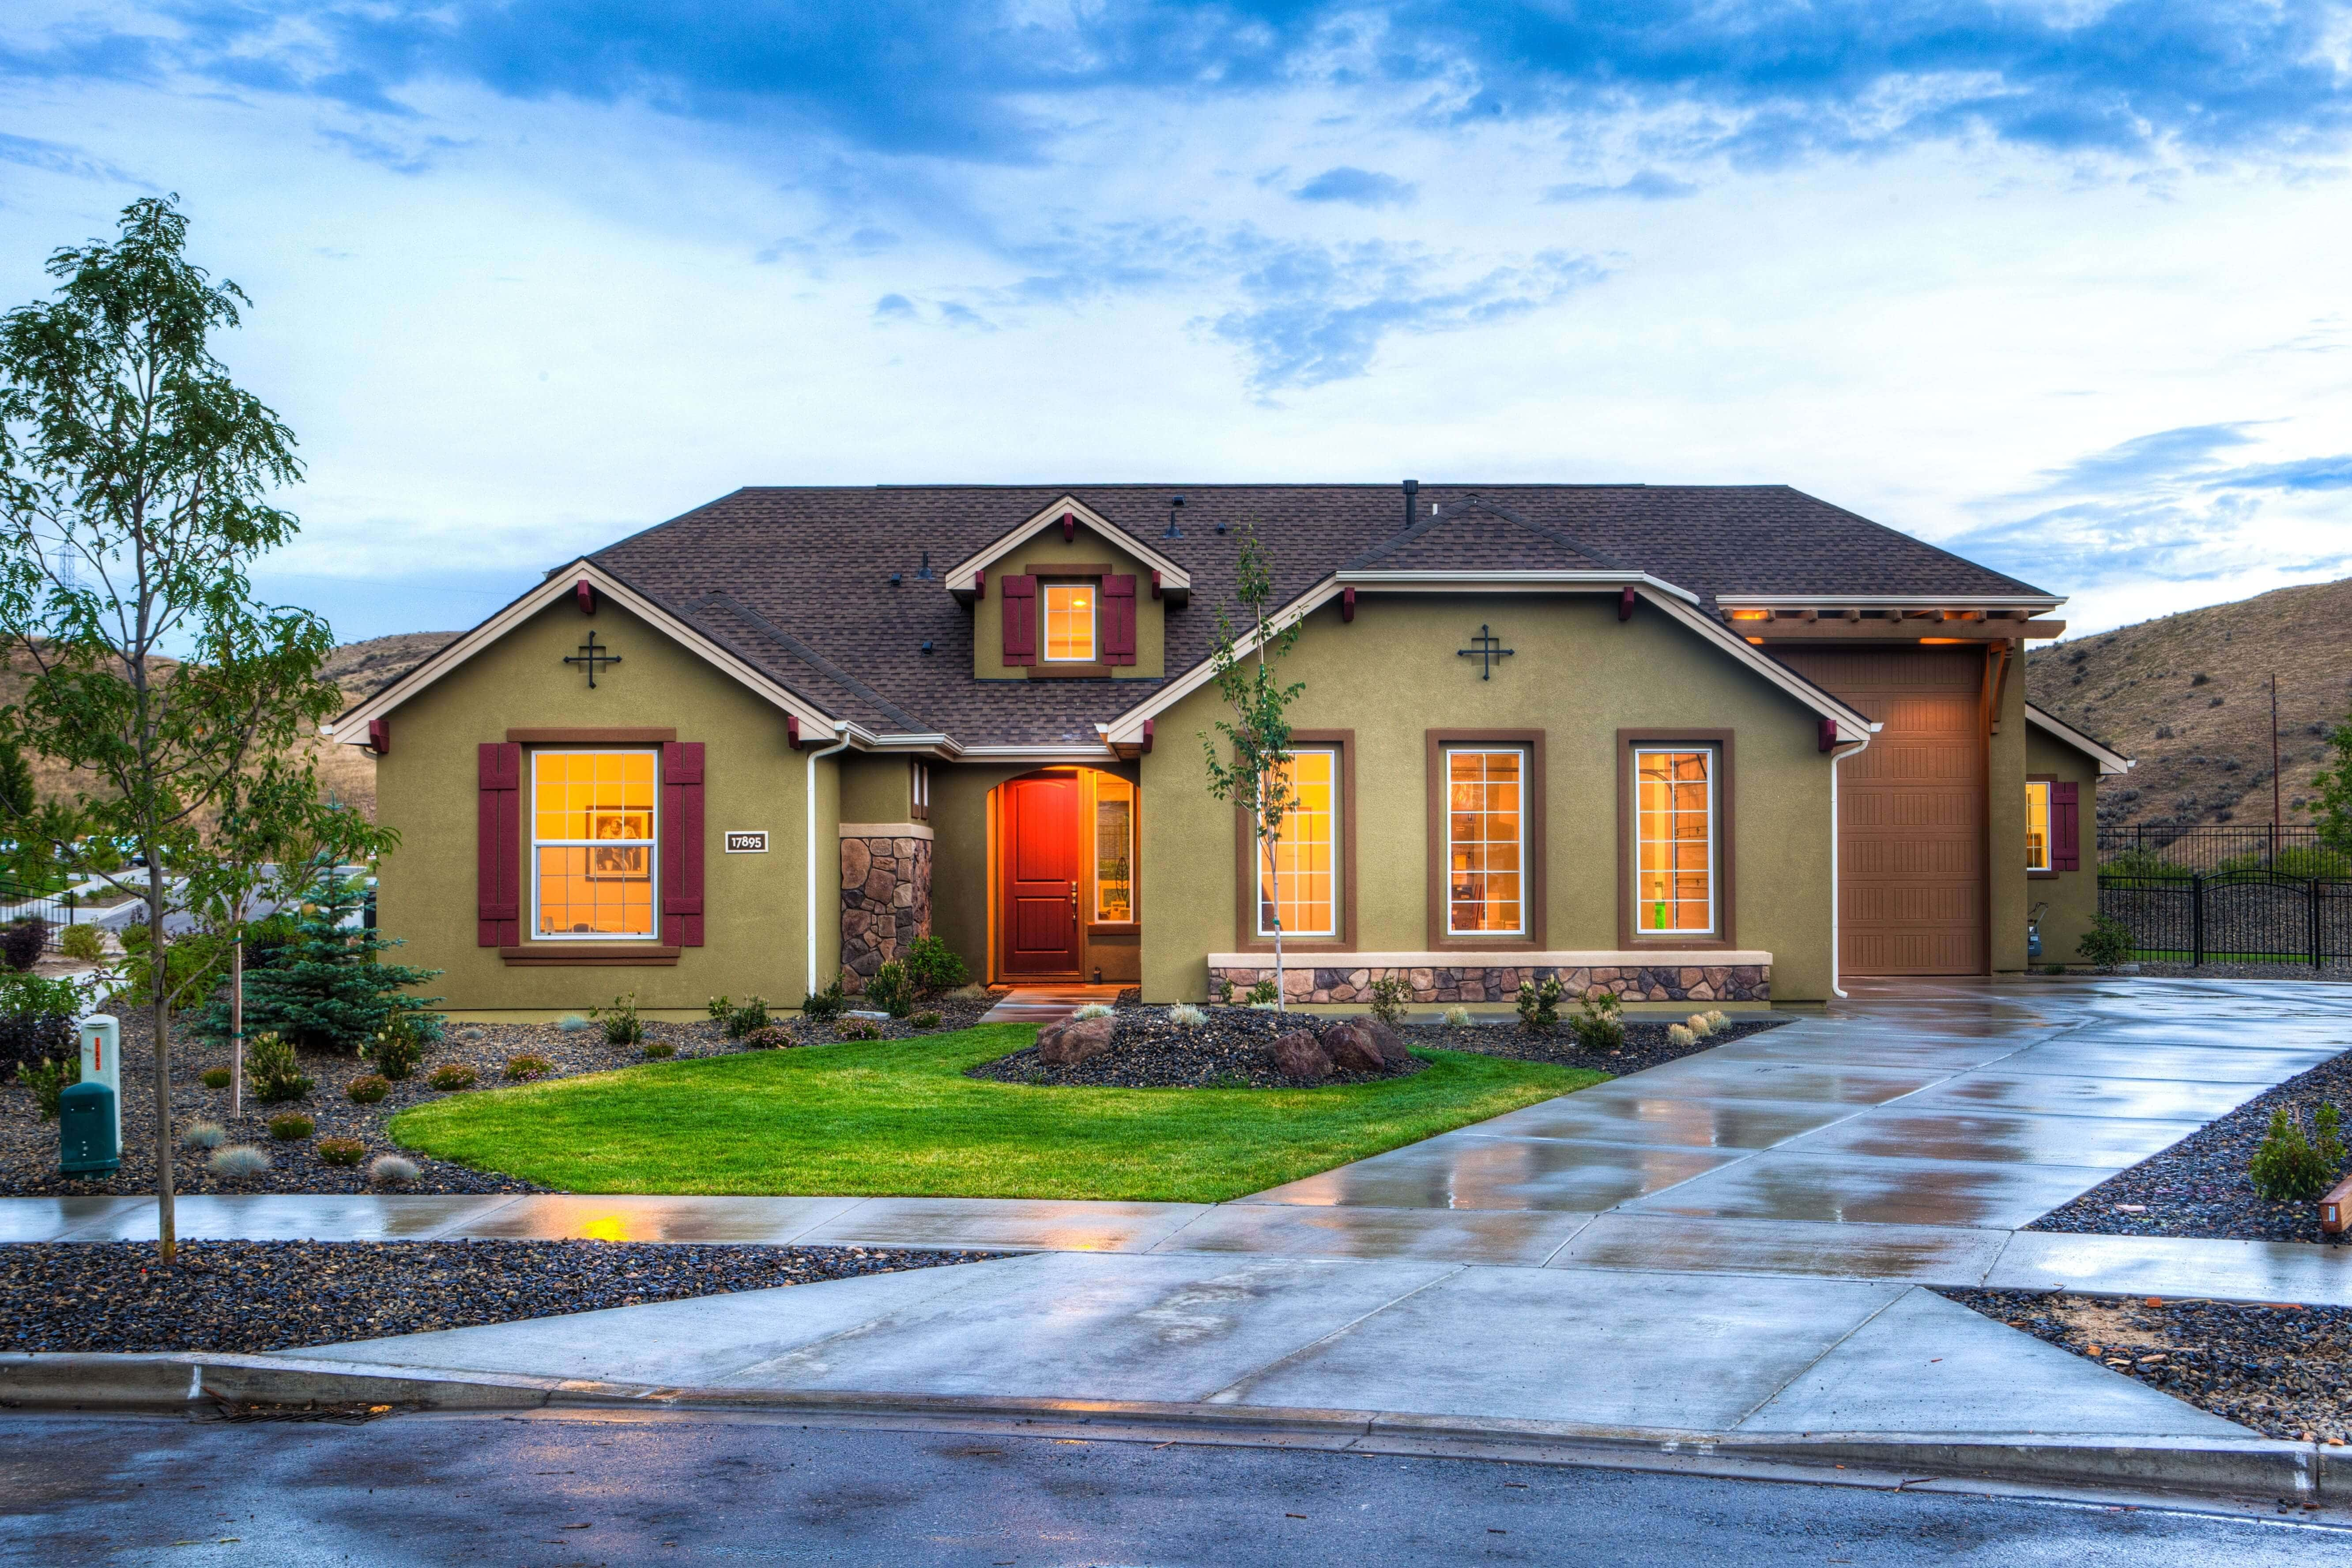 Mortgage Rates in U.S. Remain Low in Late August